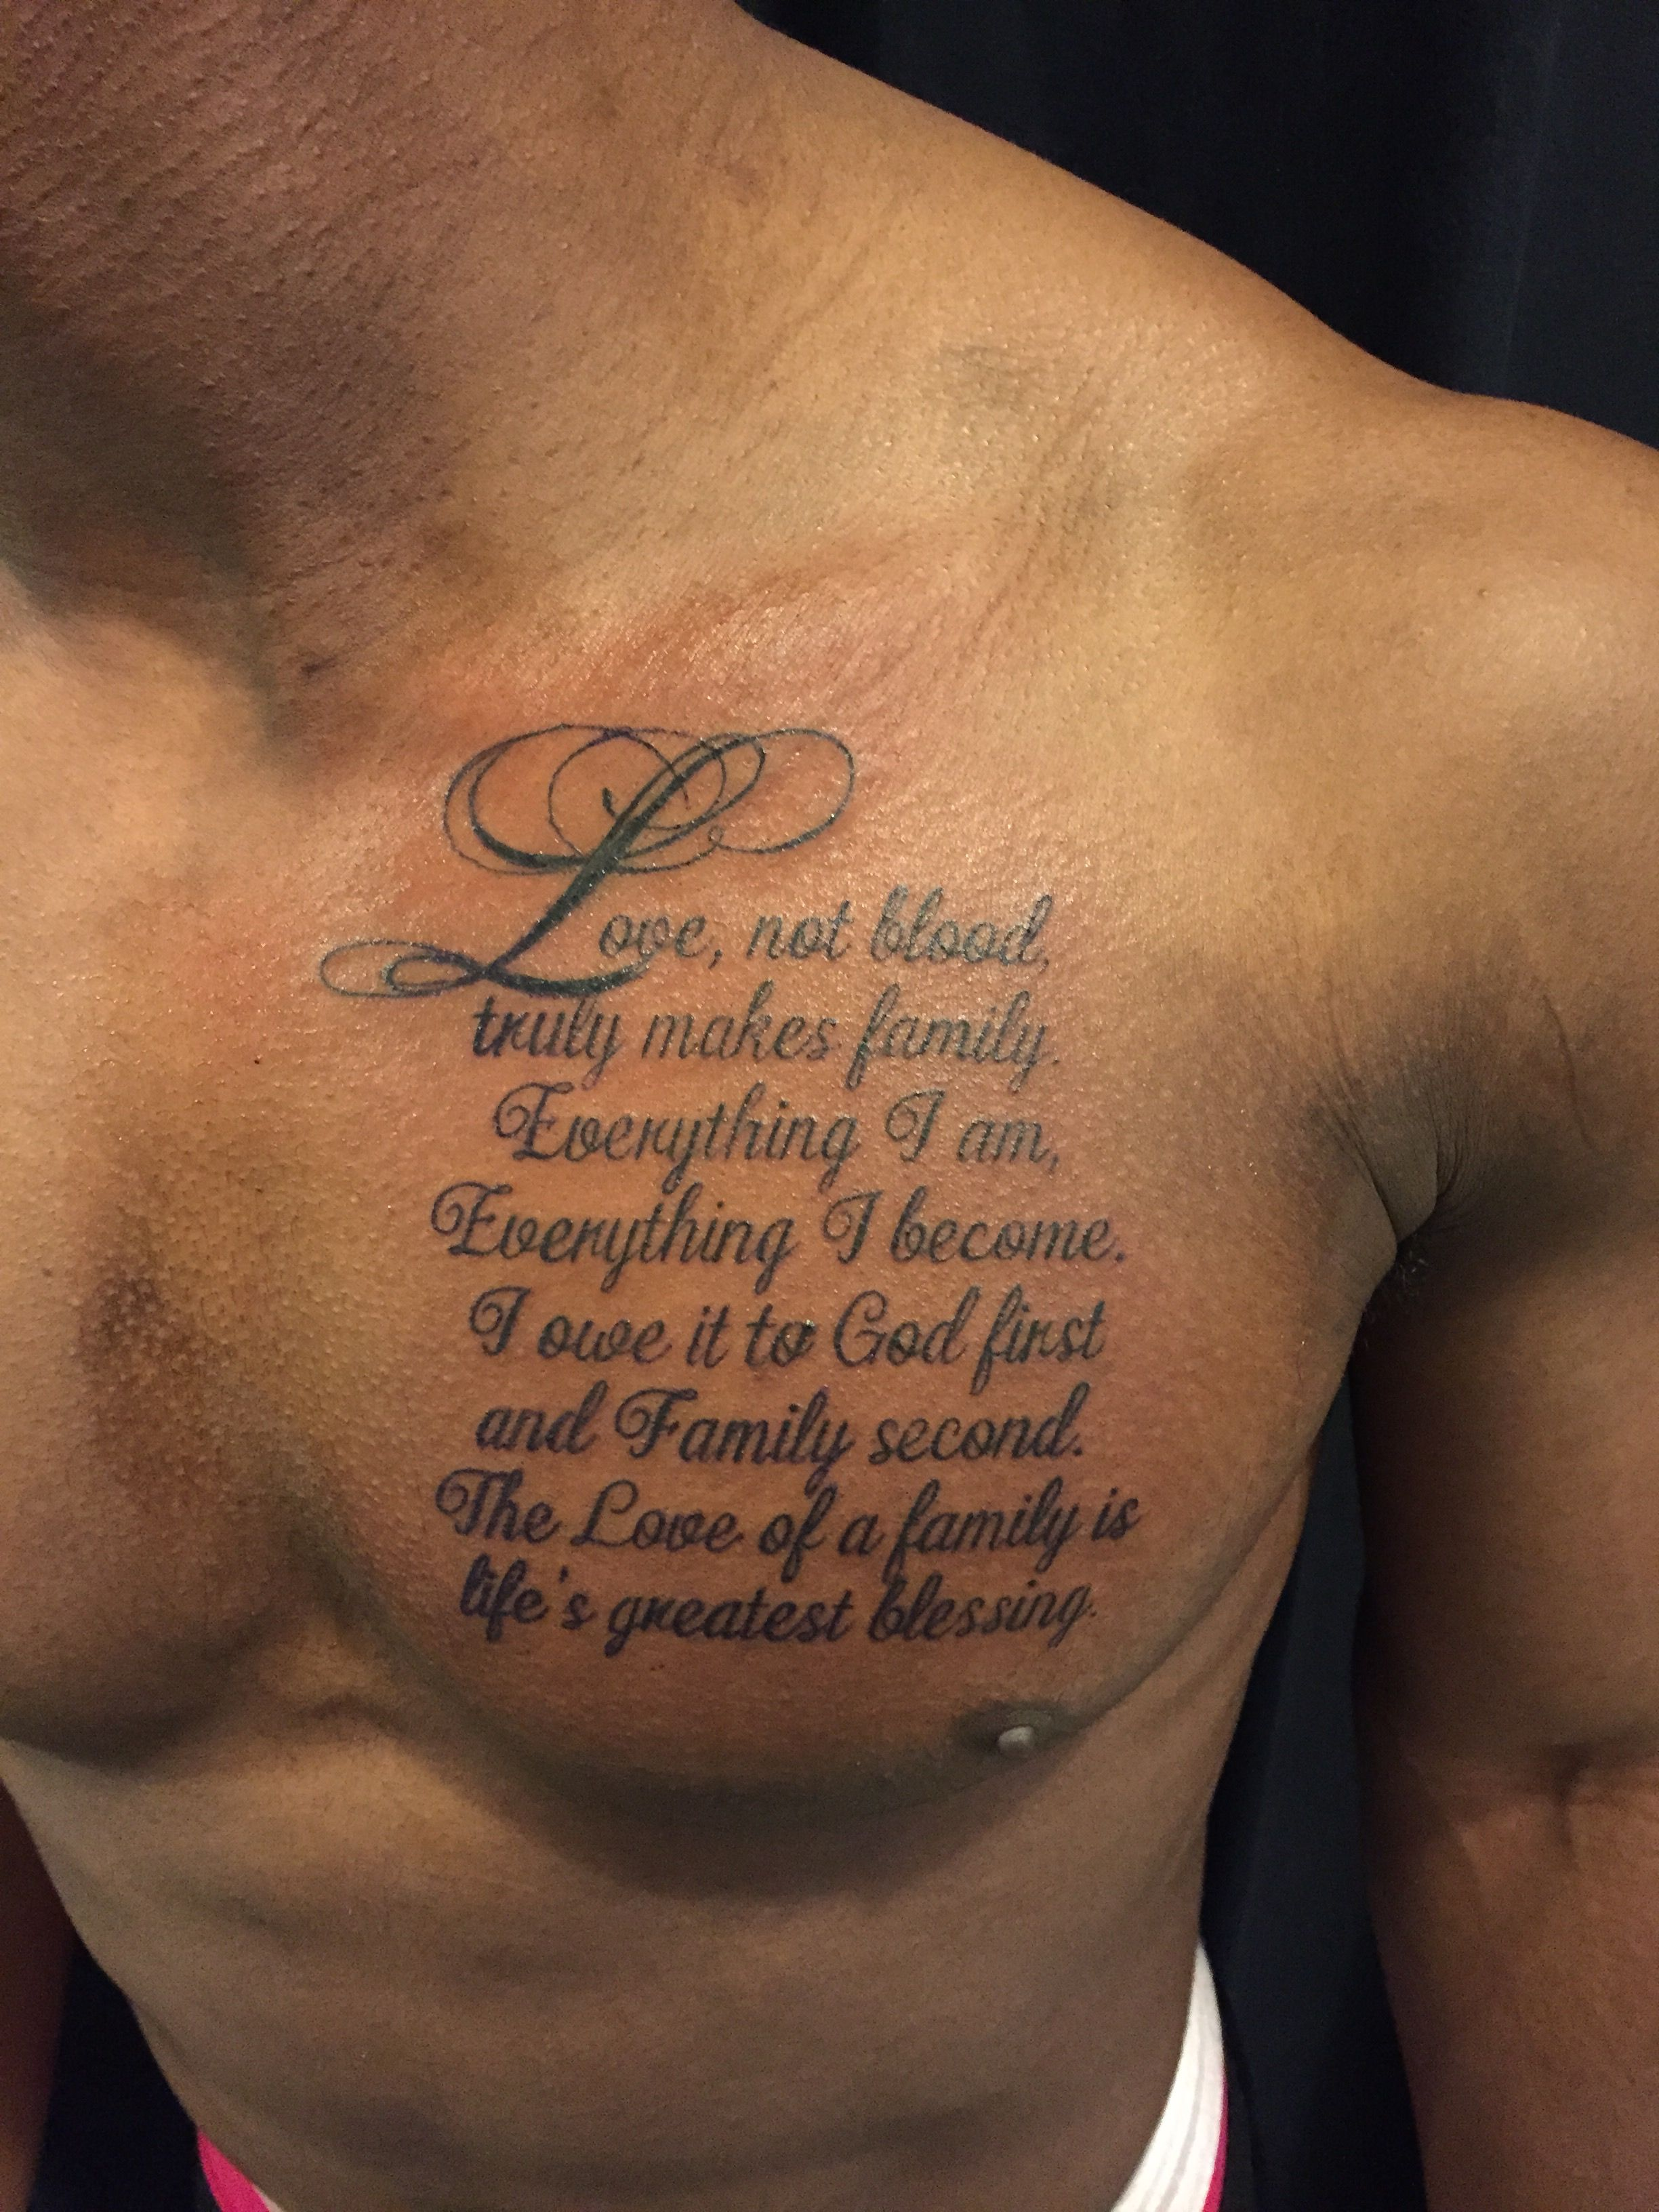 Bible Verse Chest Tattoos For Men : bible, verse, chest, tattoos, Artist:, Dreamworx, Rutherford, Vaughan,, 905-605-2663, @dreamworxink, #dreamworxink, Hours:, Tues-Fri, Chest, Tattoo, Verse, Tattoos,